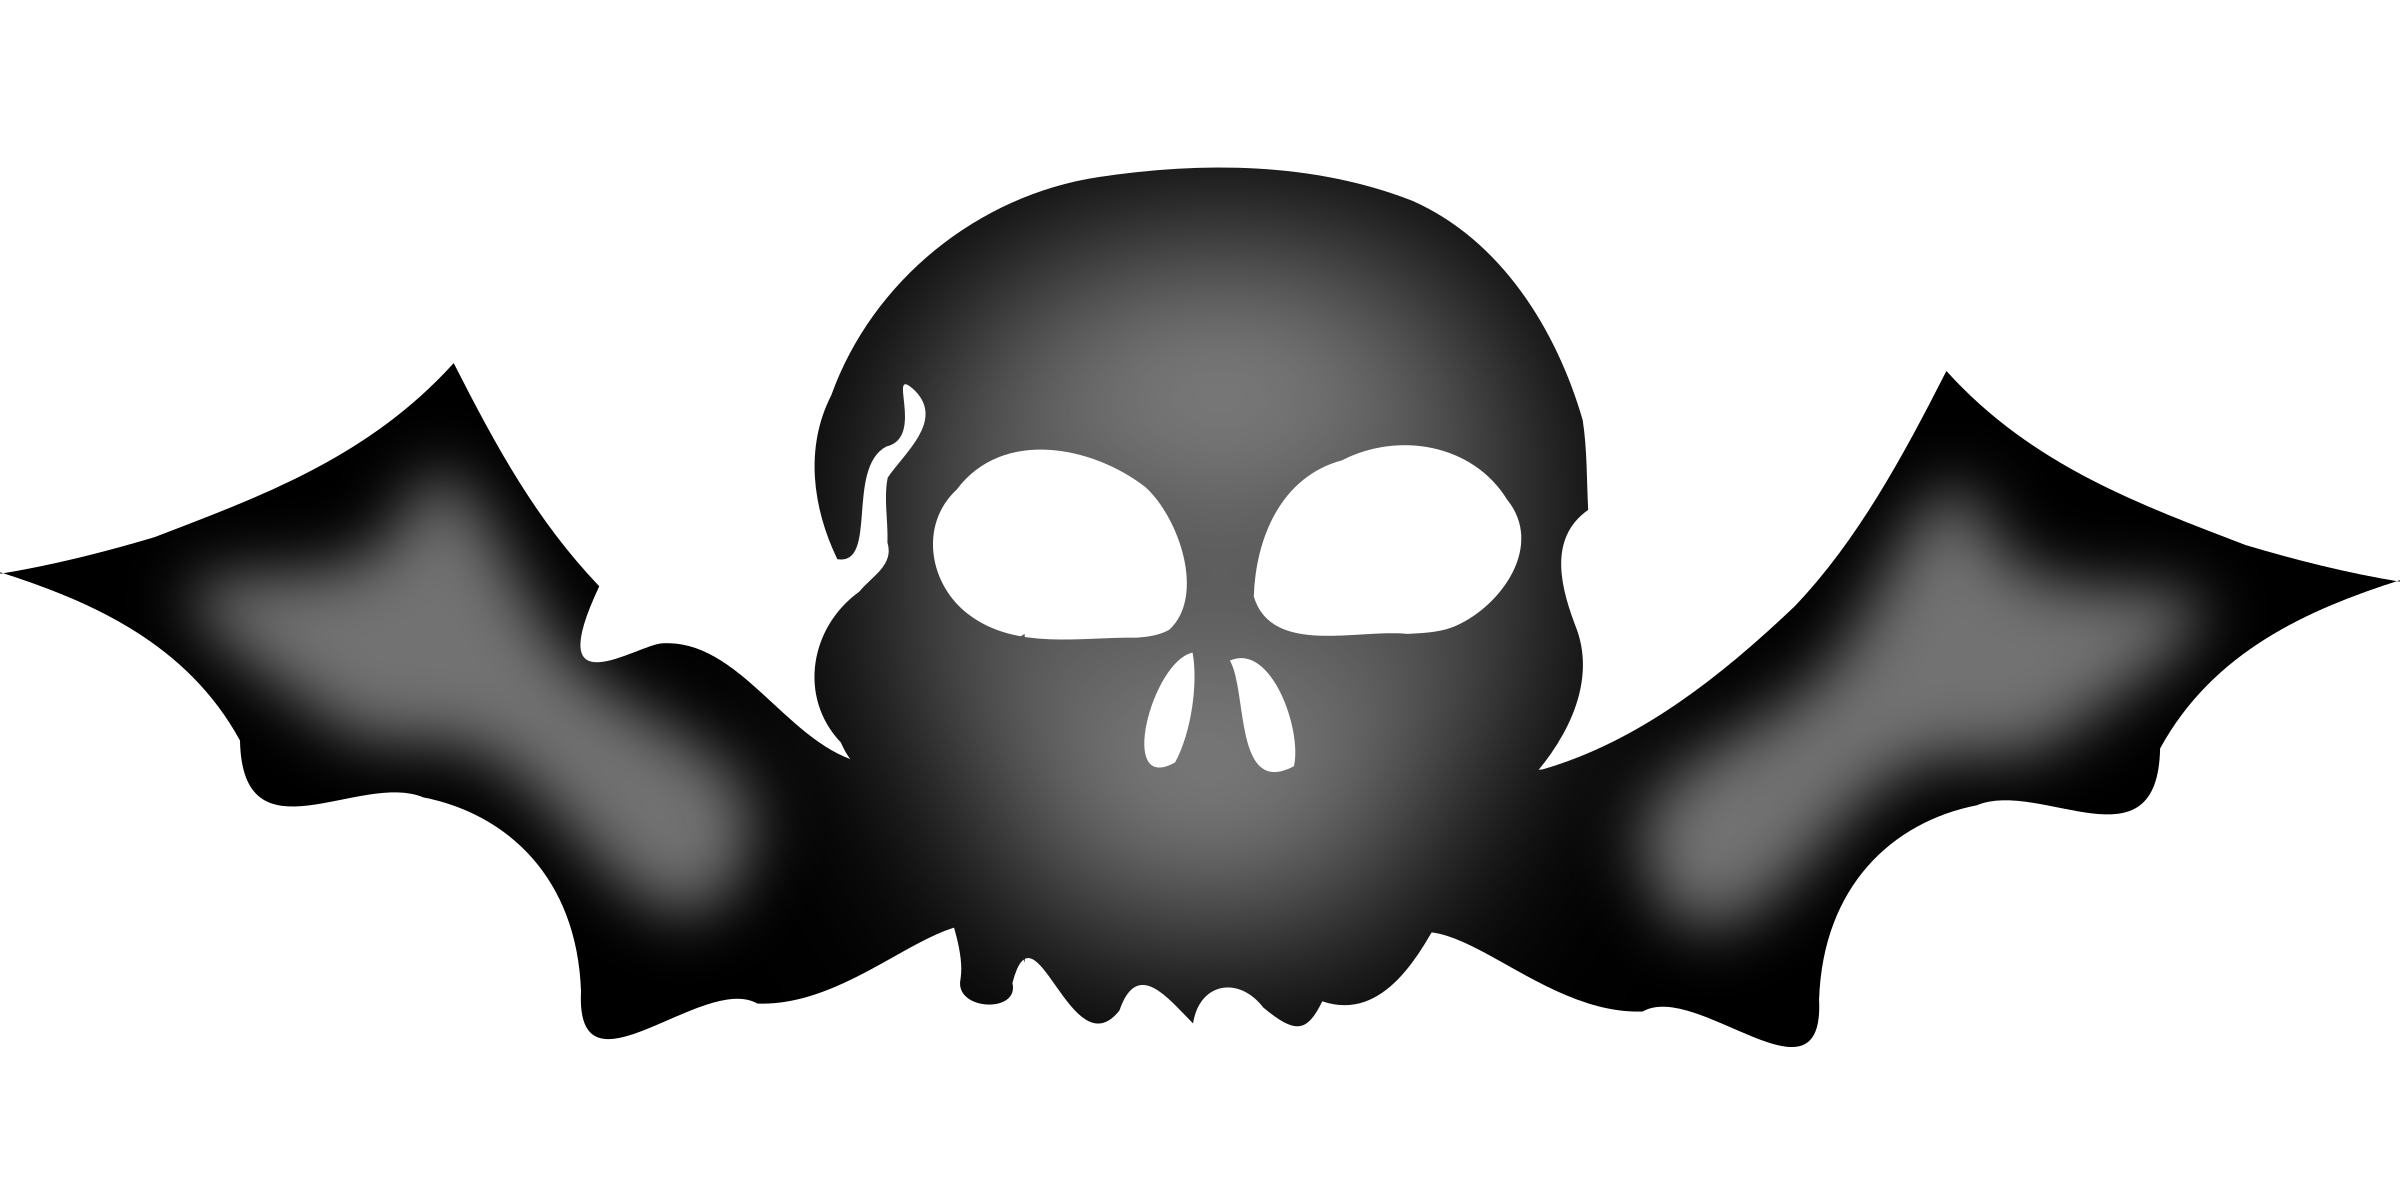 Baseball skull clipart graphic black and white stock A skull with bat wings Icons PNG - Free PNG and Icons Downloads graphic black and white stock